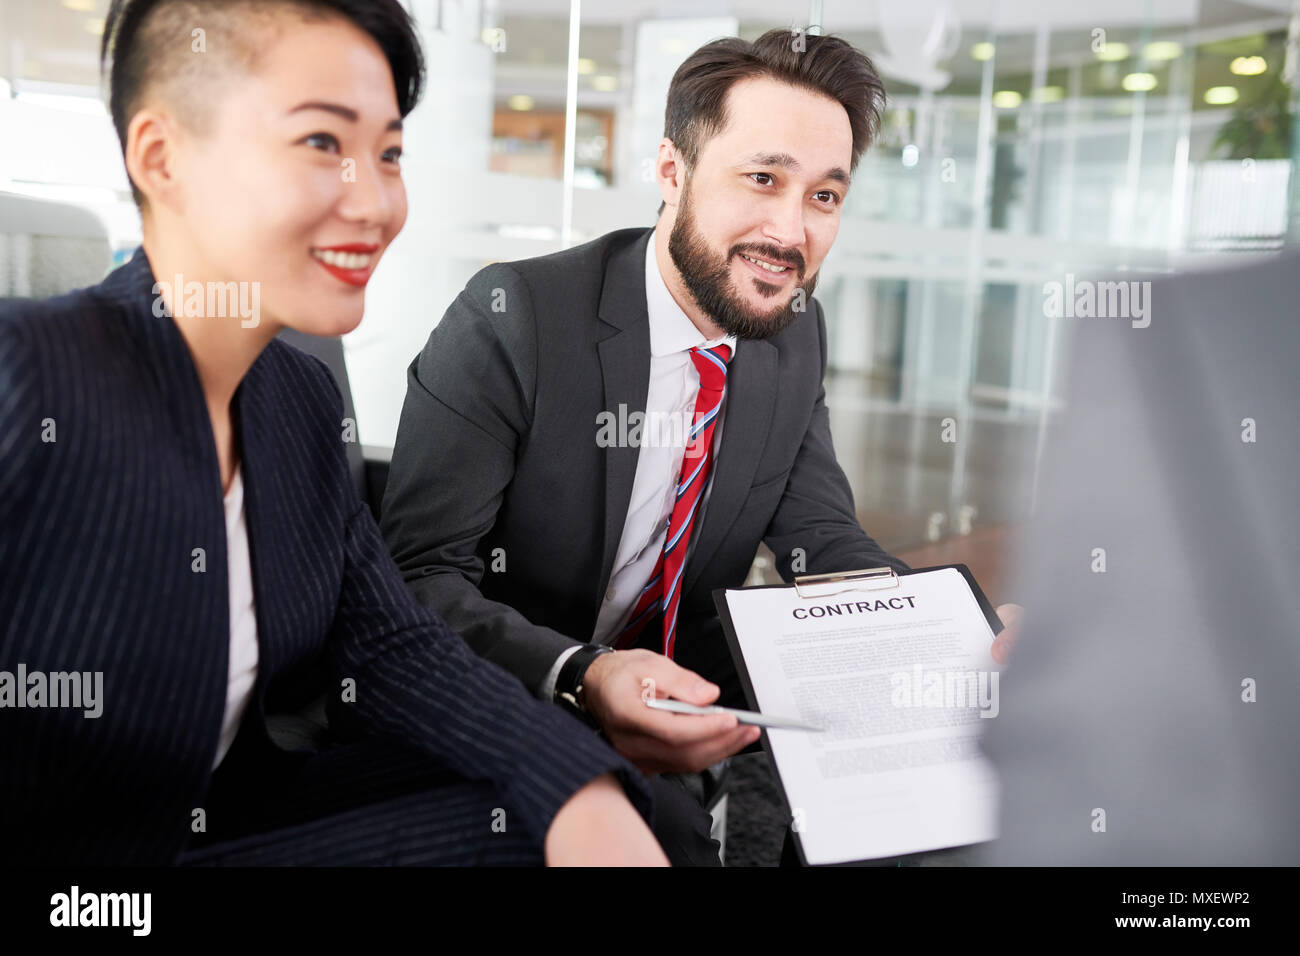 Productive Negotiations with Business Partner Stock Photo